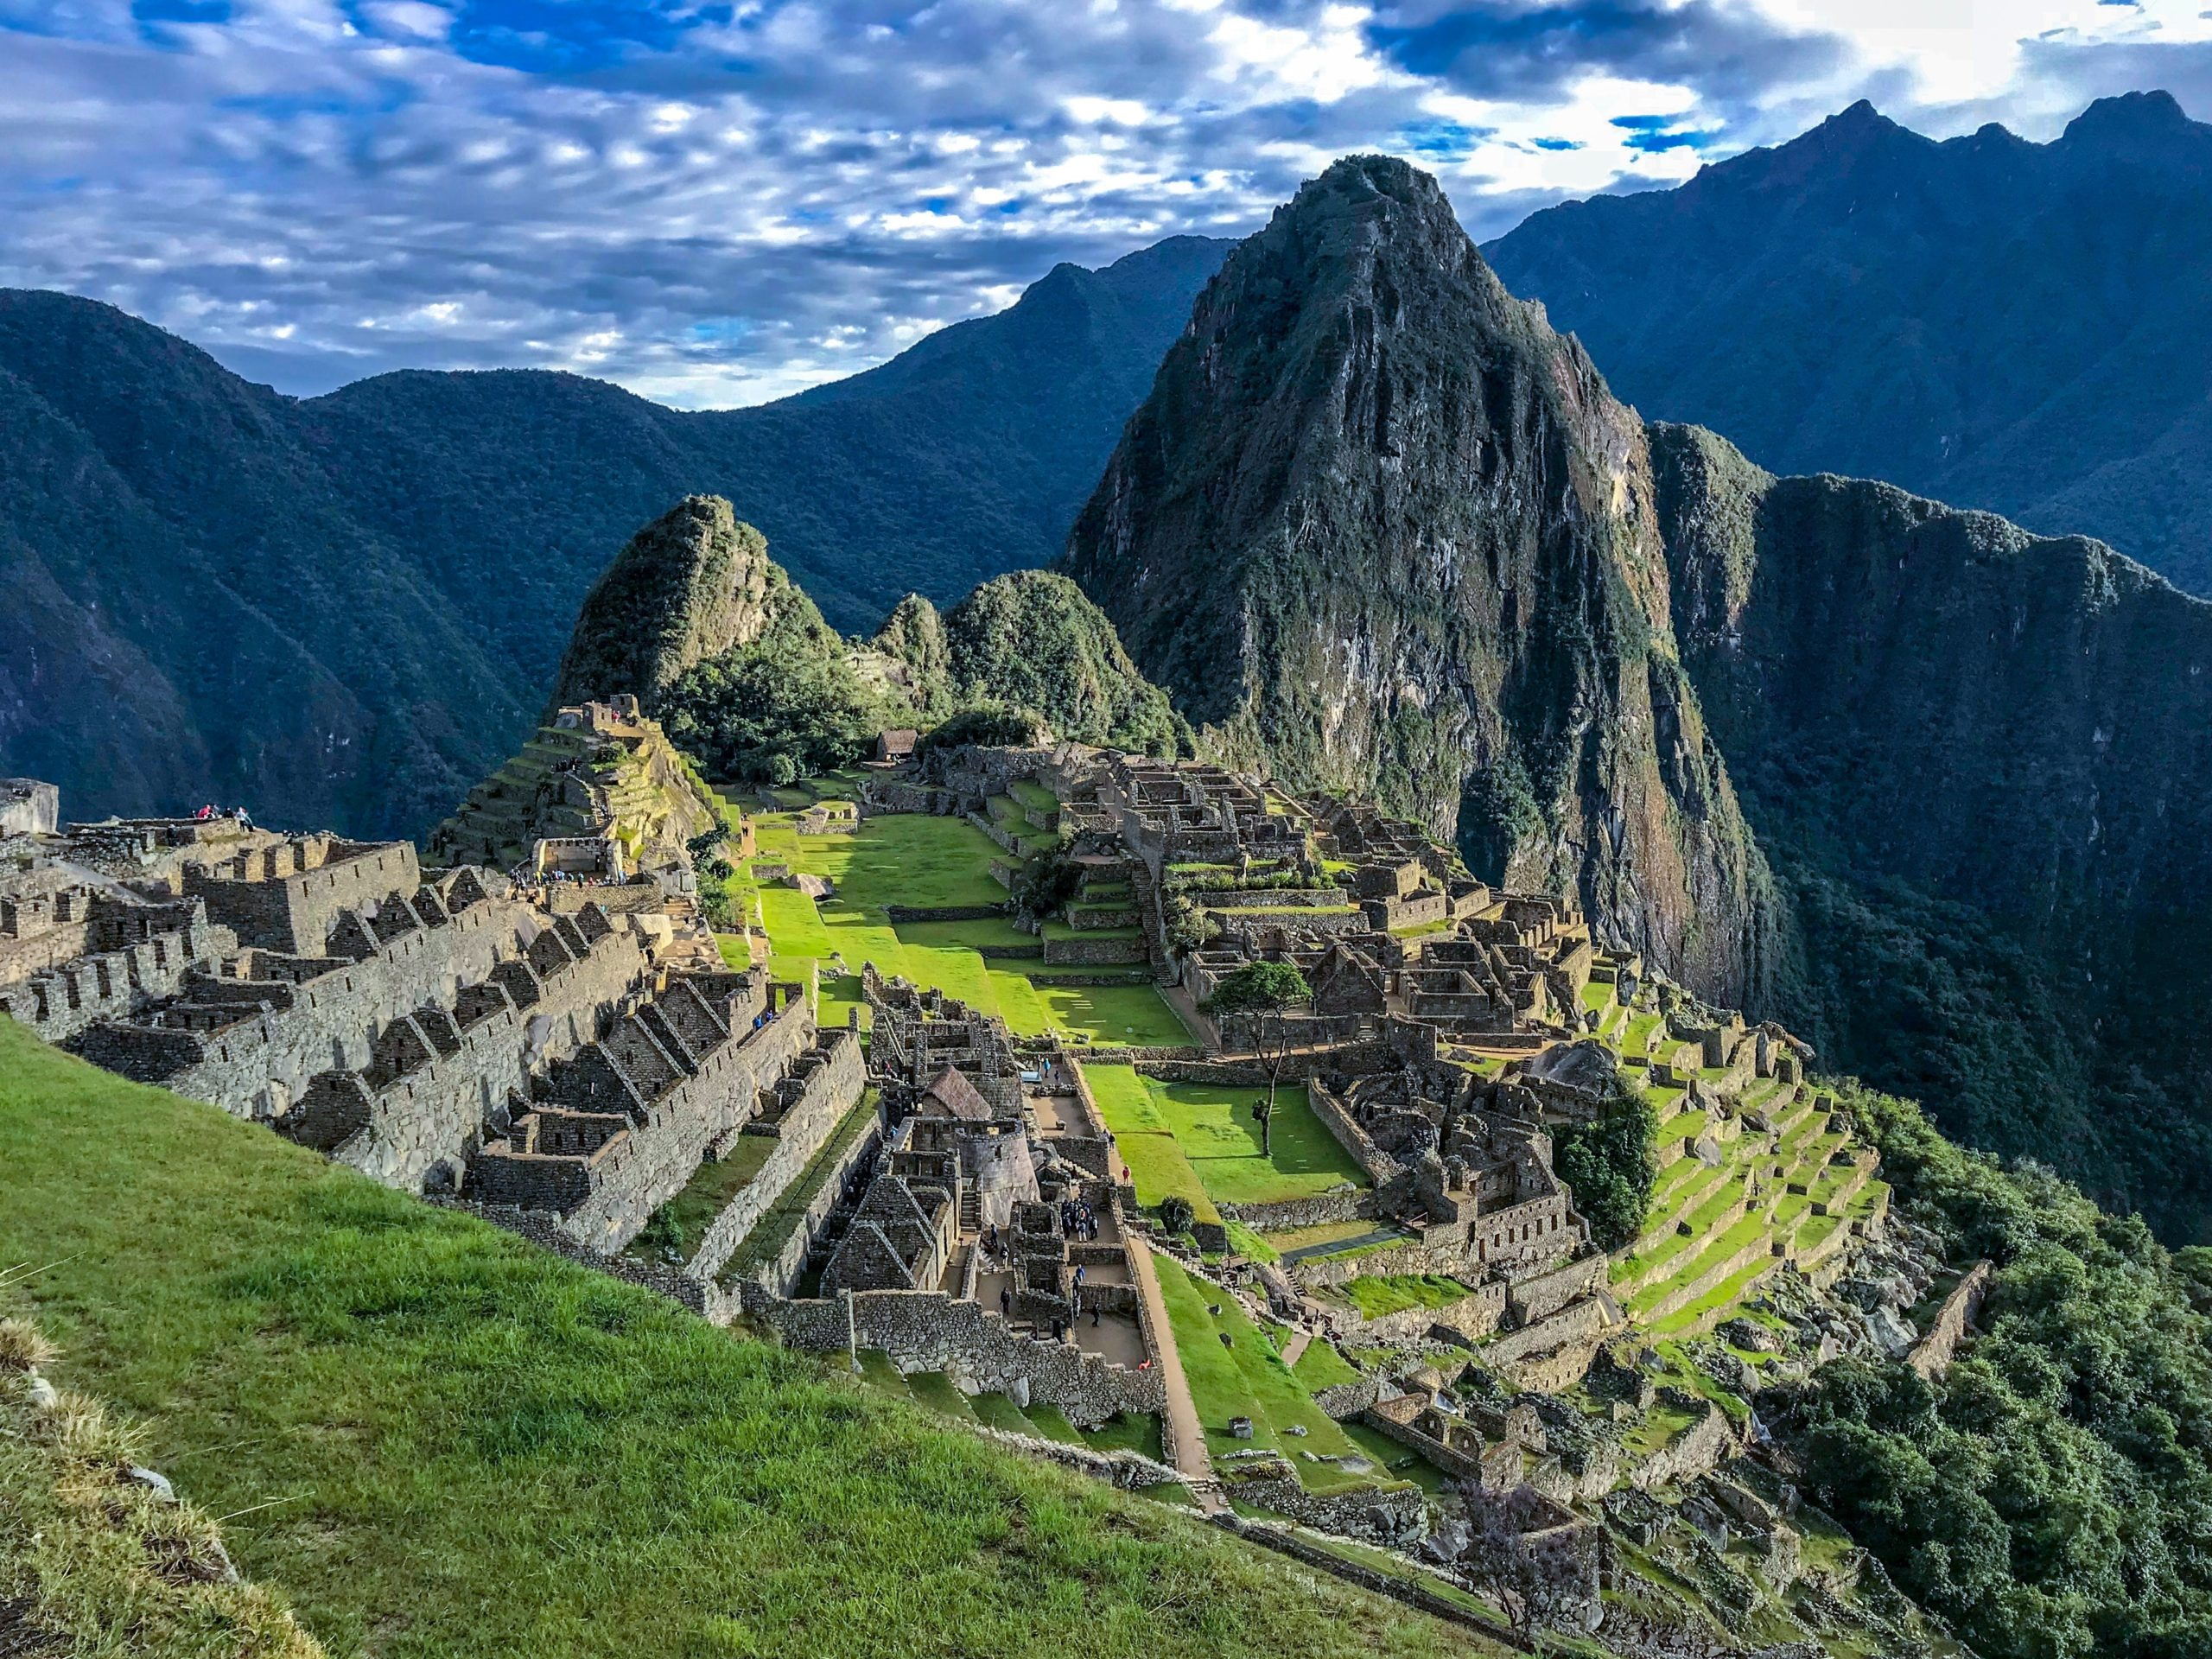 My Visit to Machu Picchu and Huayna Picchu